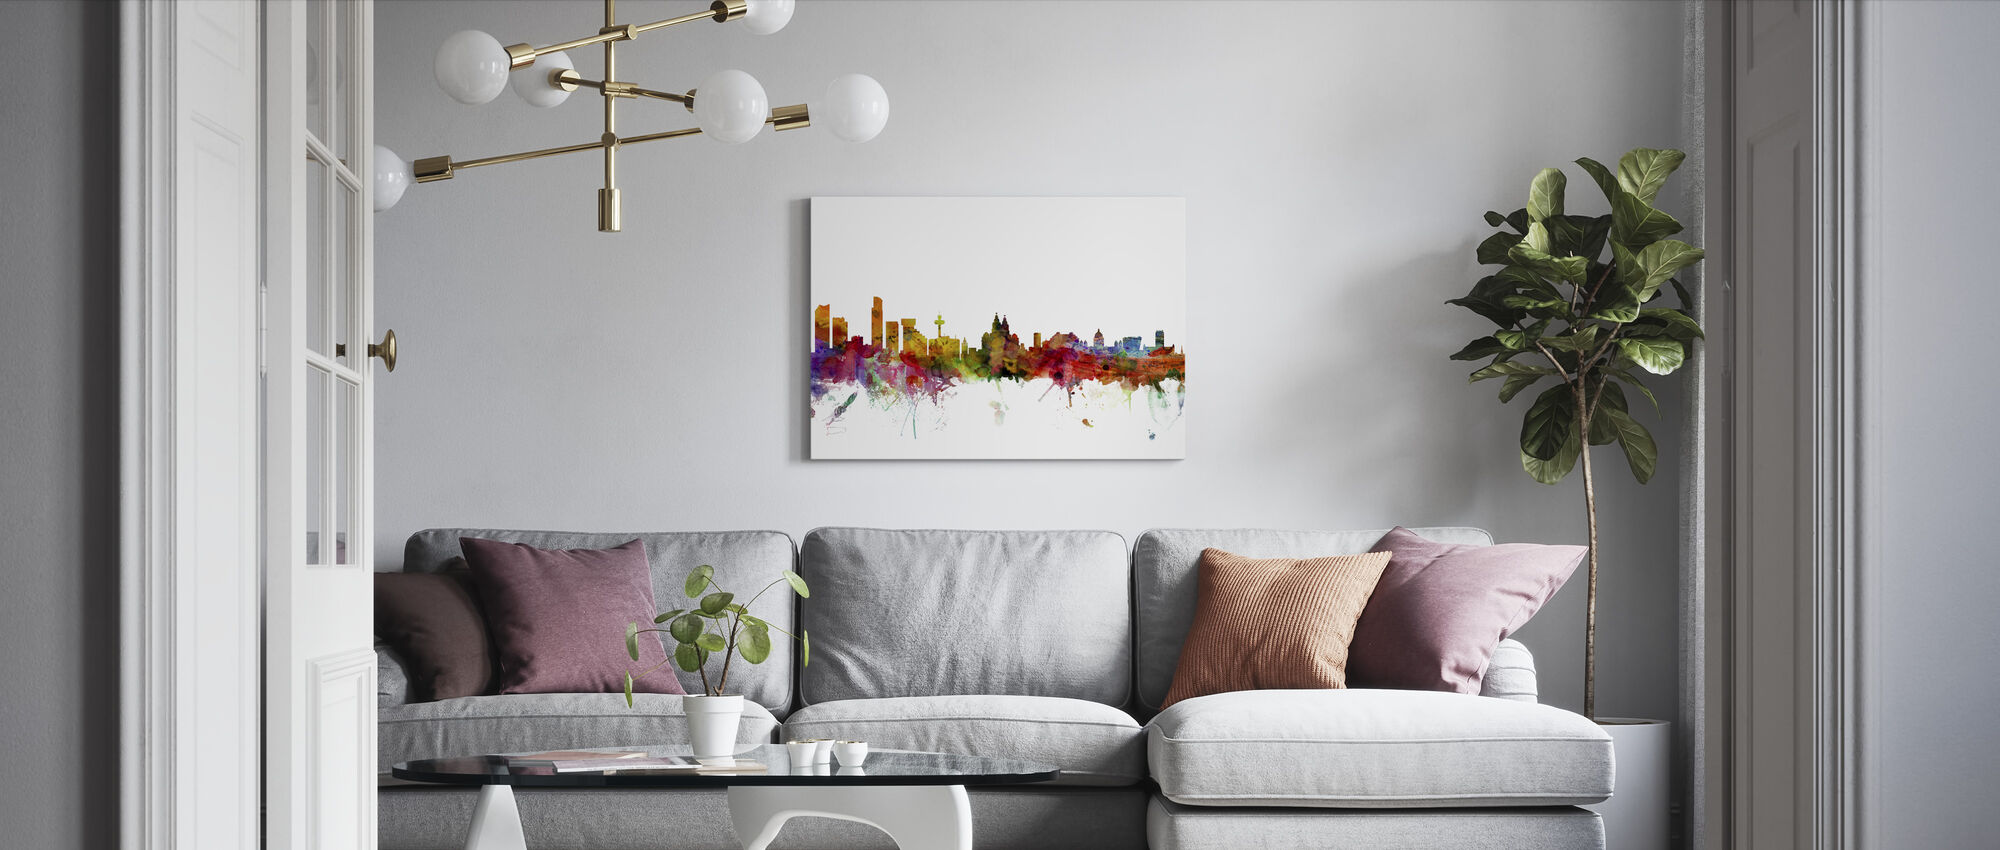 Liverpool Skyline - Canvas print - Living Room